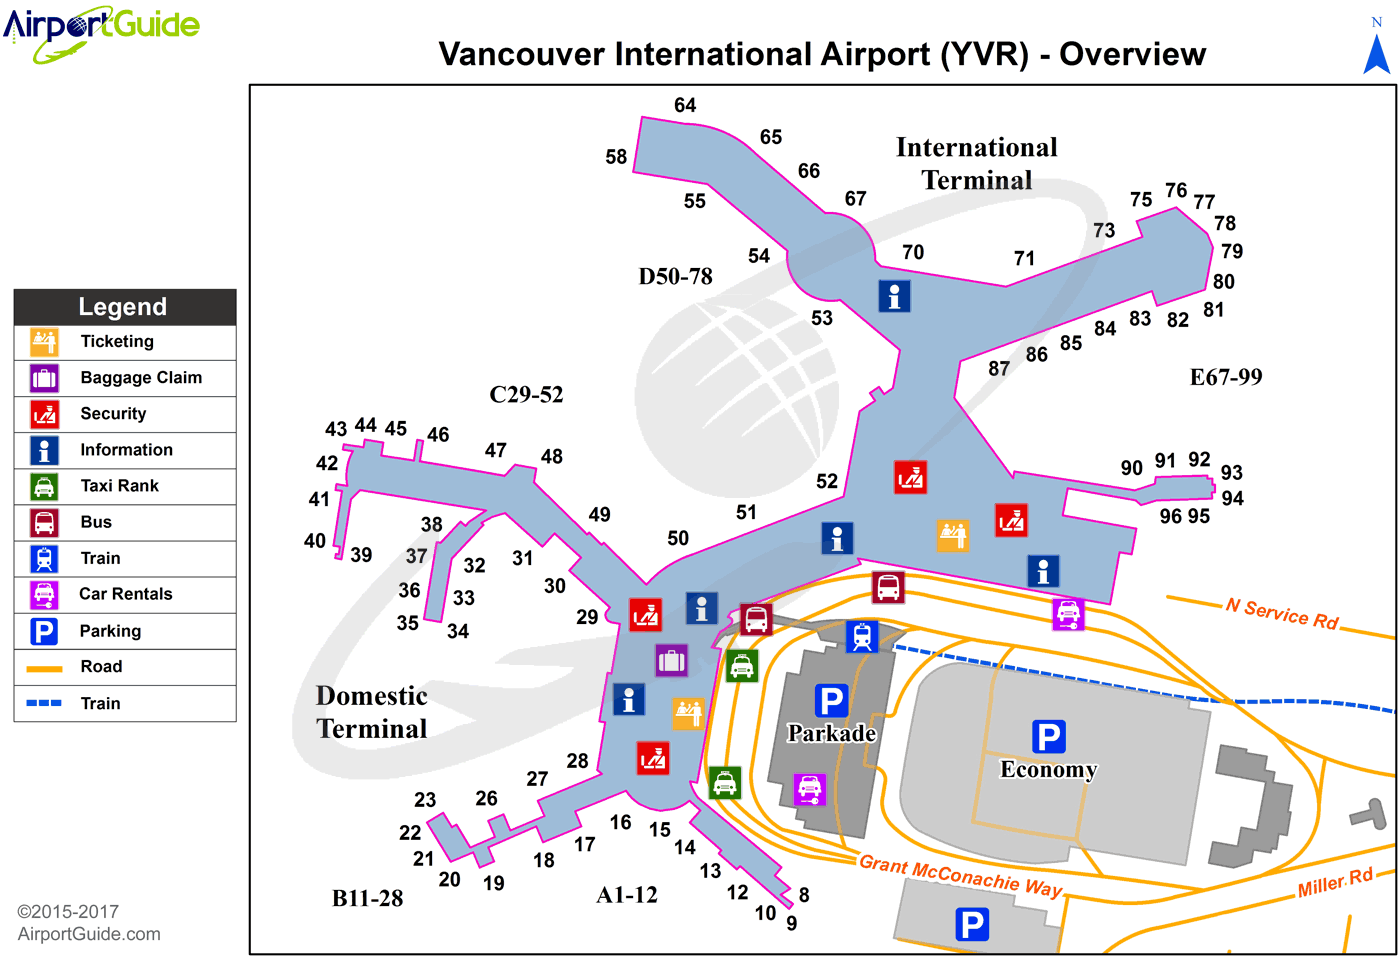 Vancouver International Airport Cyvr Yvr Airport Guide